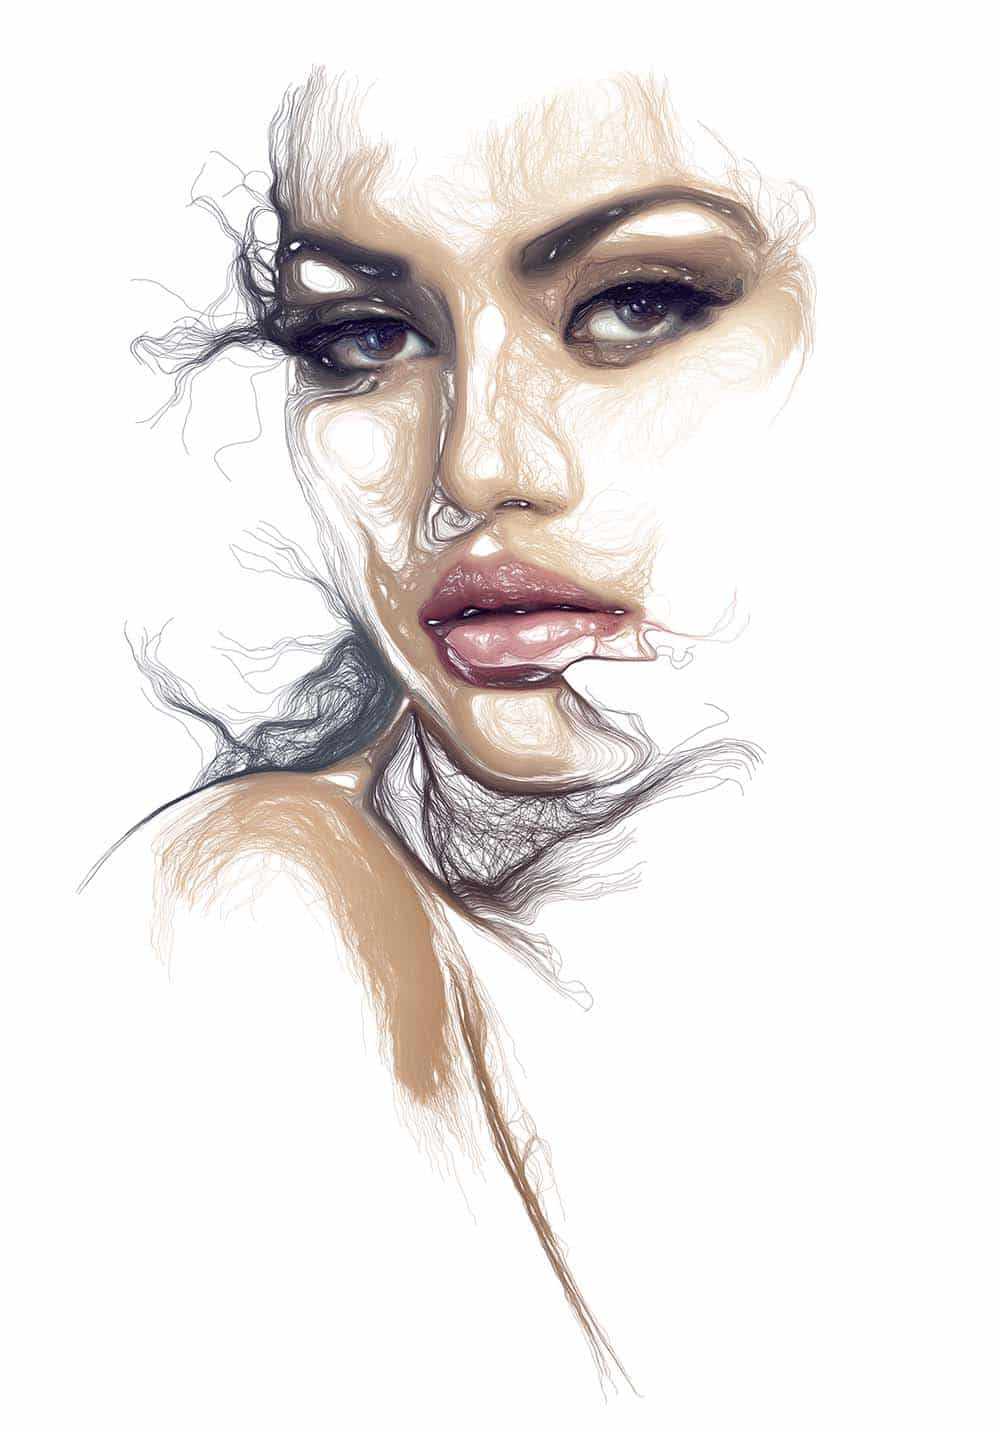 Line Art Effect Photoshop : Watercolor photoshop lineart inspirate